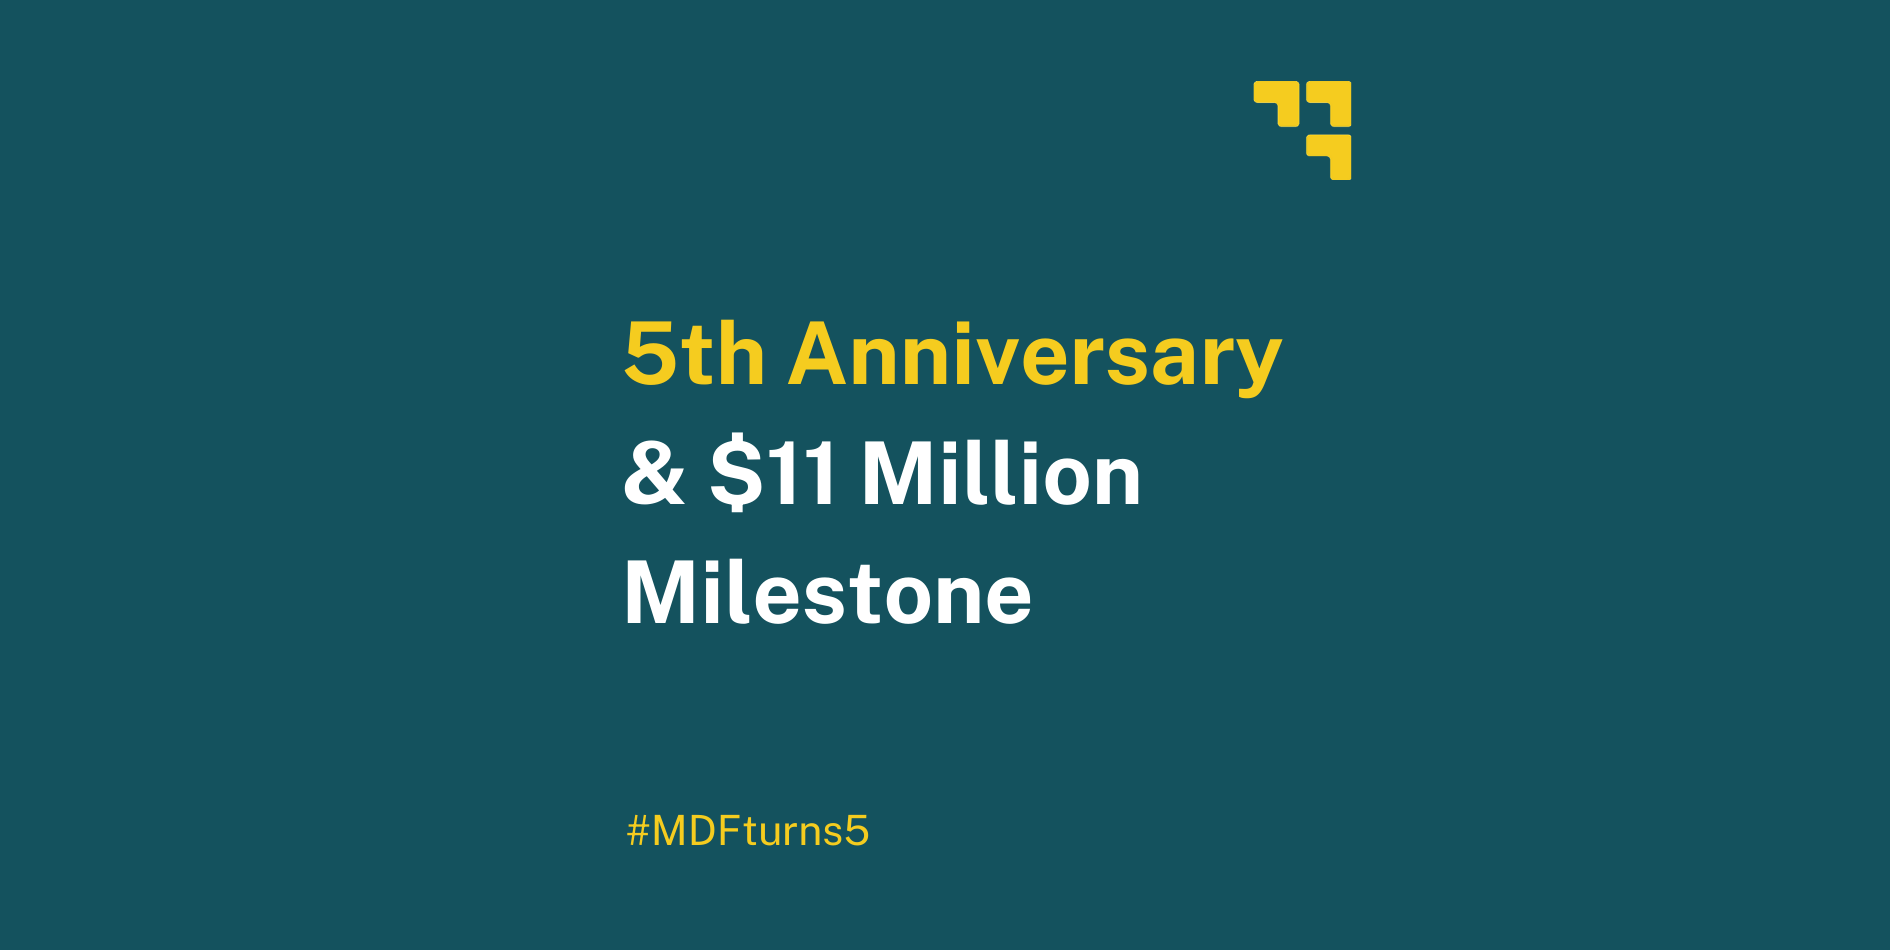 Local impact investment firm Mission Driven Finance marks 5th anniversary with $11 million milestone